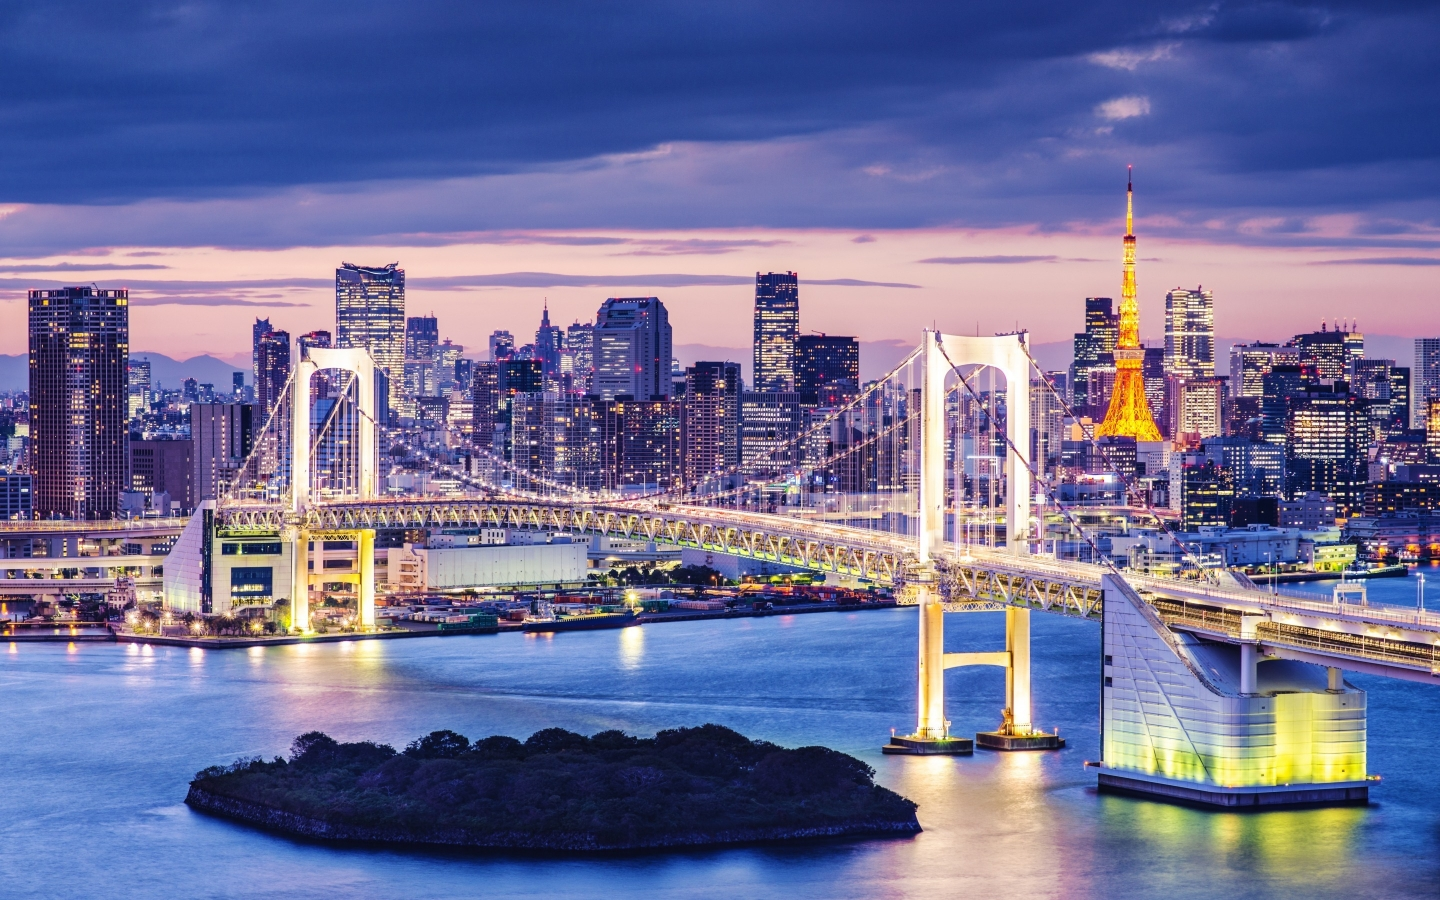 Tokyo Night View  for 1440 x 900 widescreen resolution